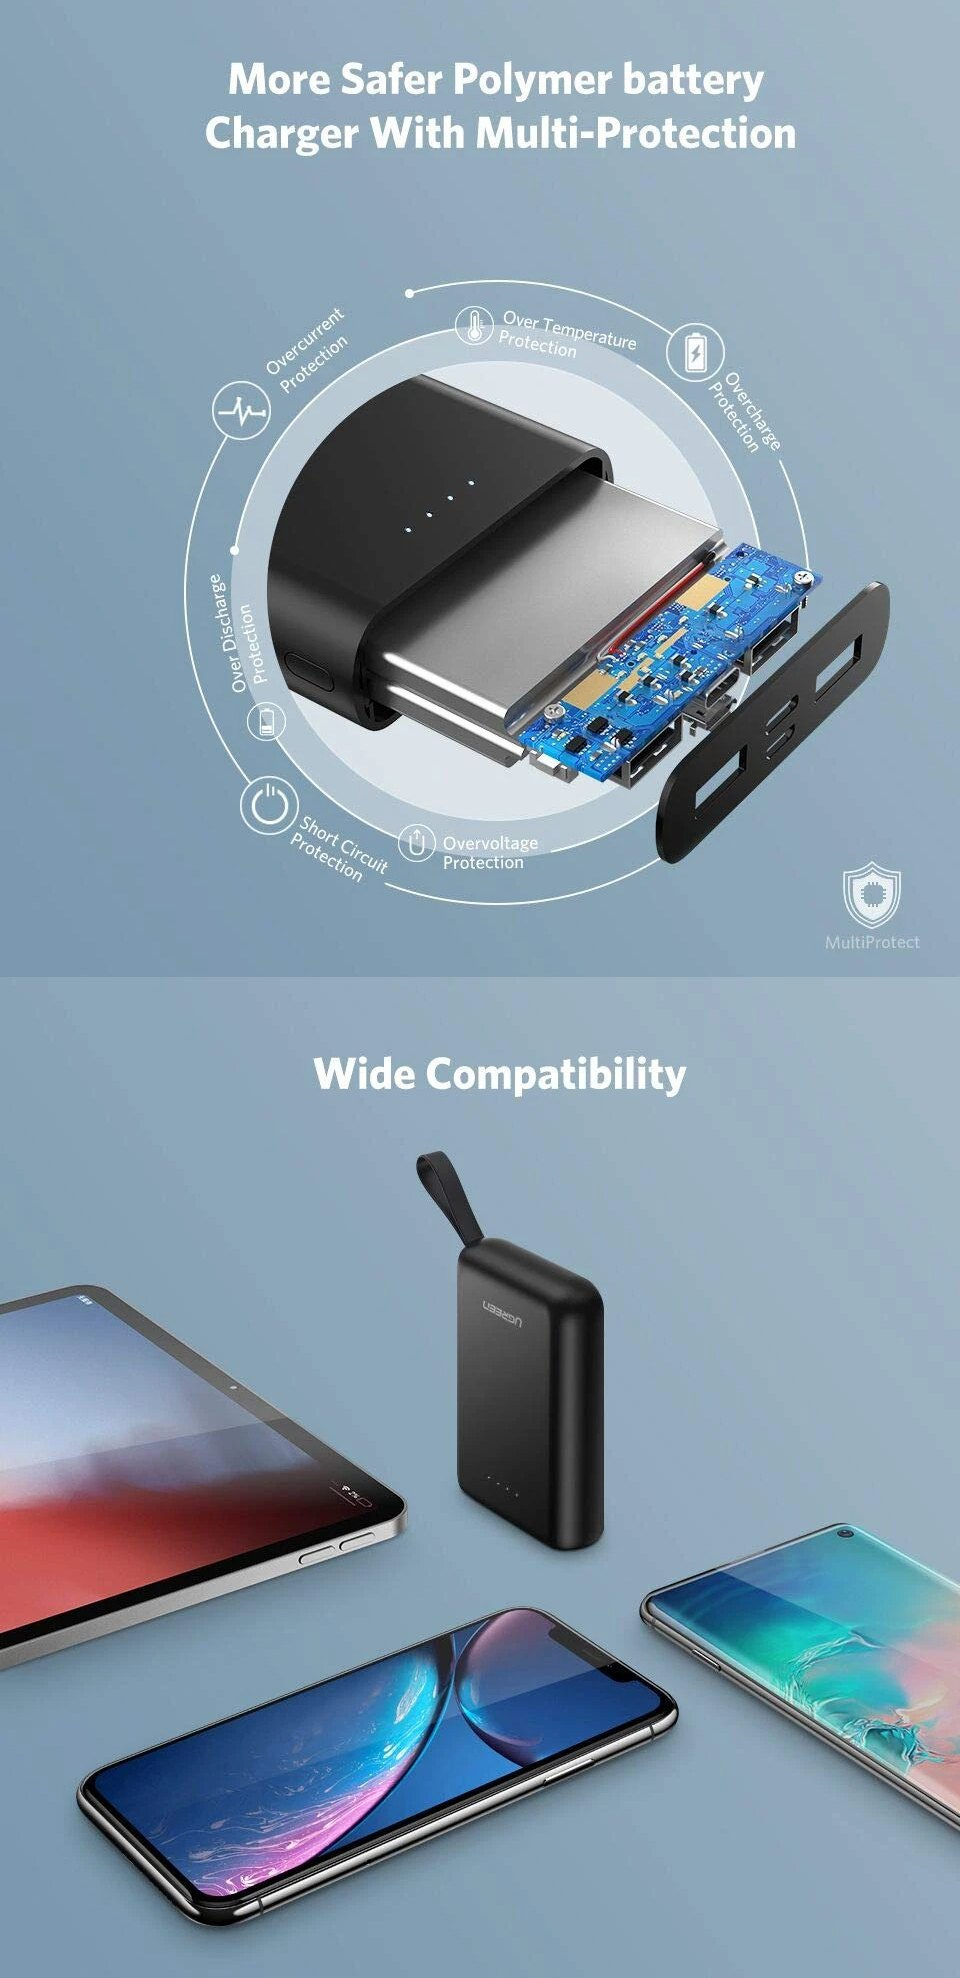 Ugreen 10000mAh Mini Power Bank with Strap features 4